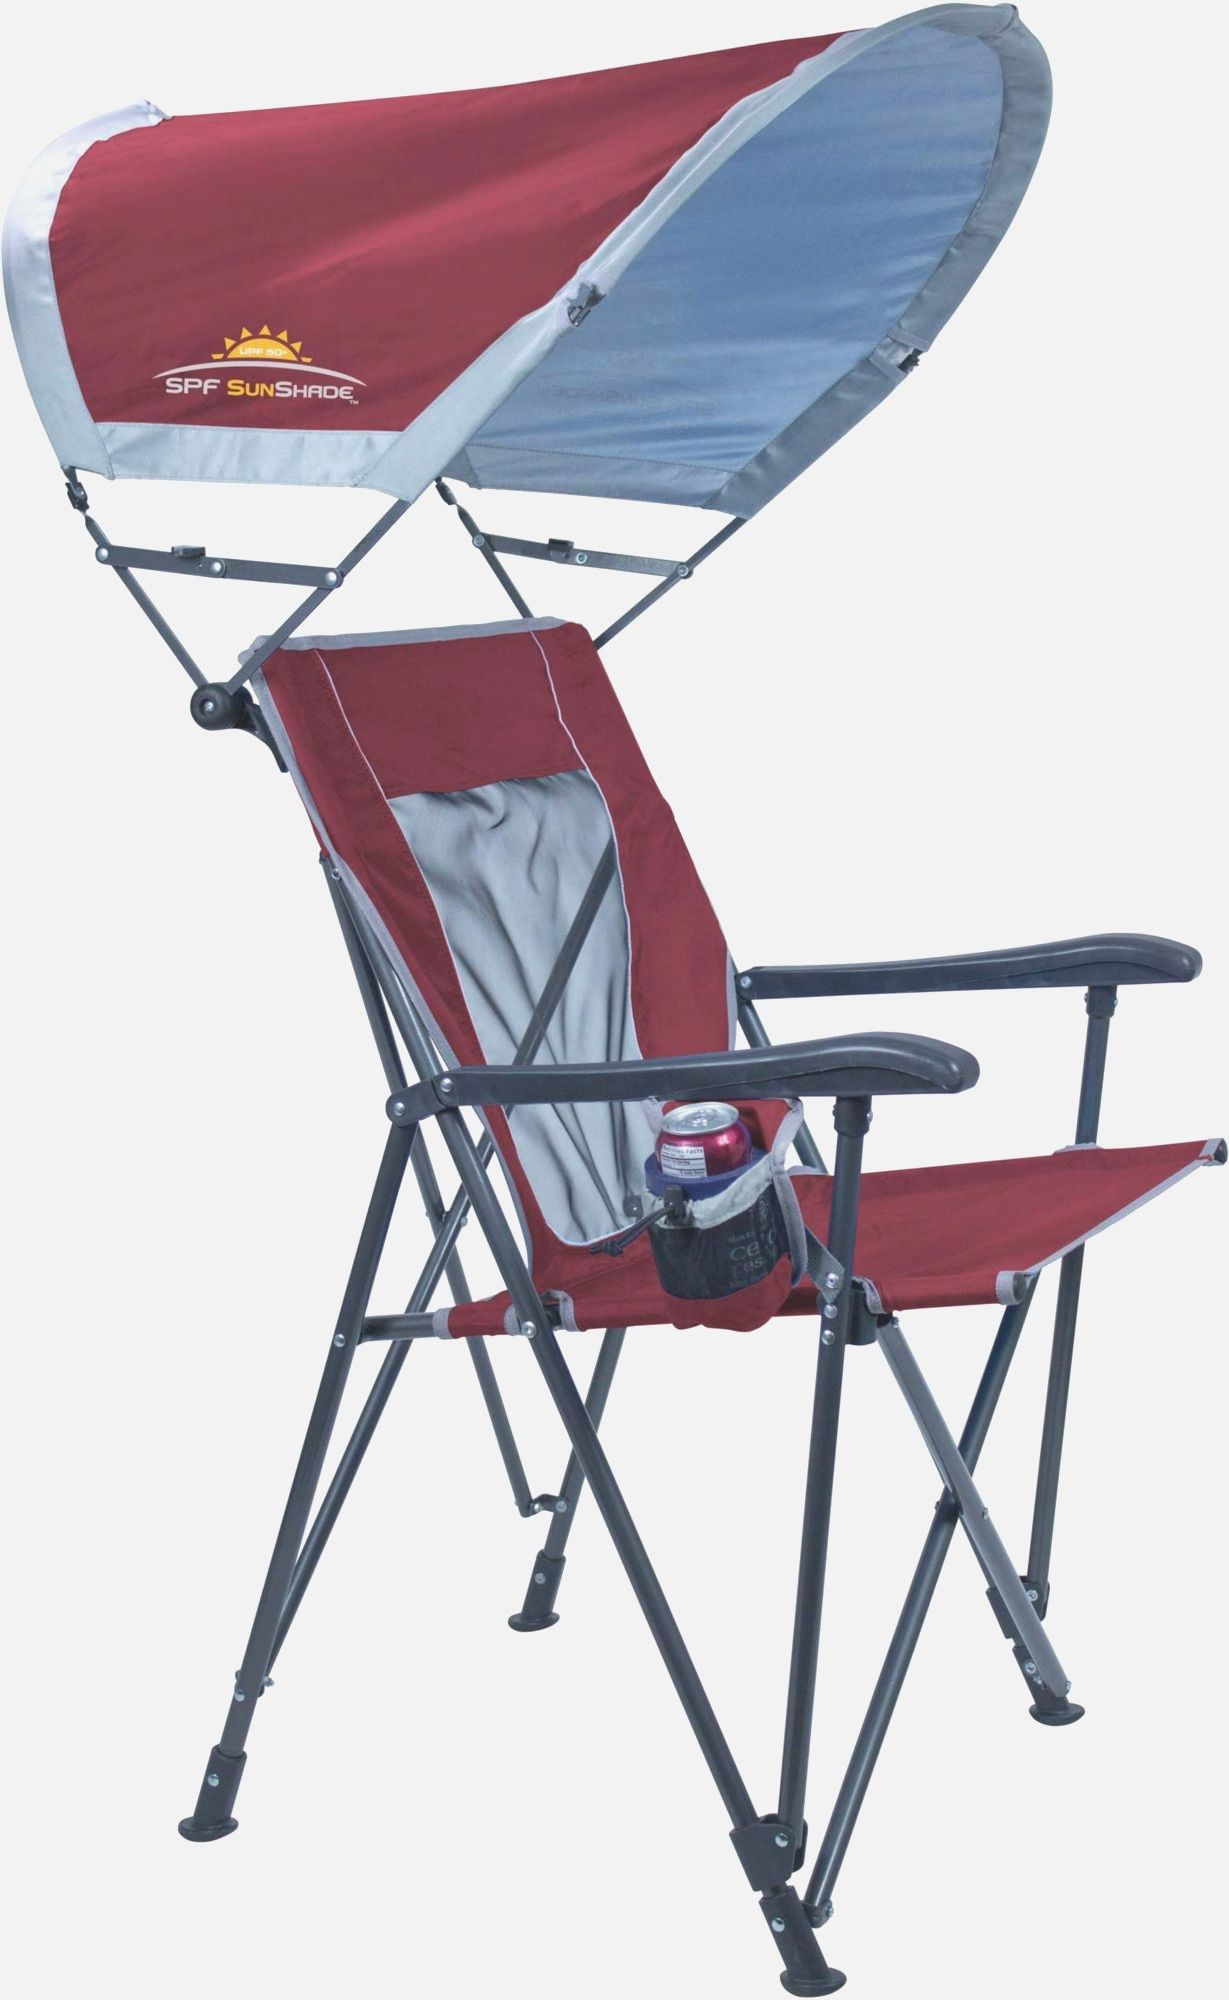 Foldable Lawn Chairs Big And Tall Lawn Chairs Big And Tall Folding Lawn Chairs Big